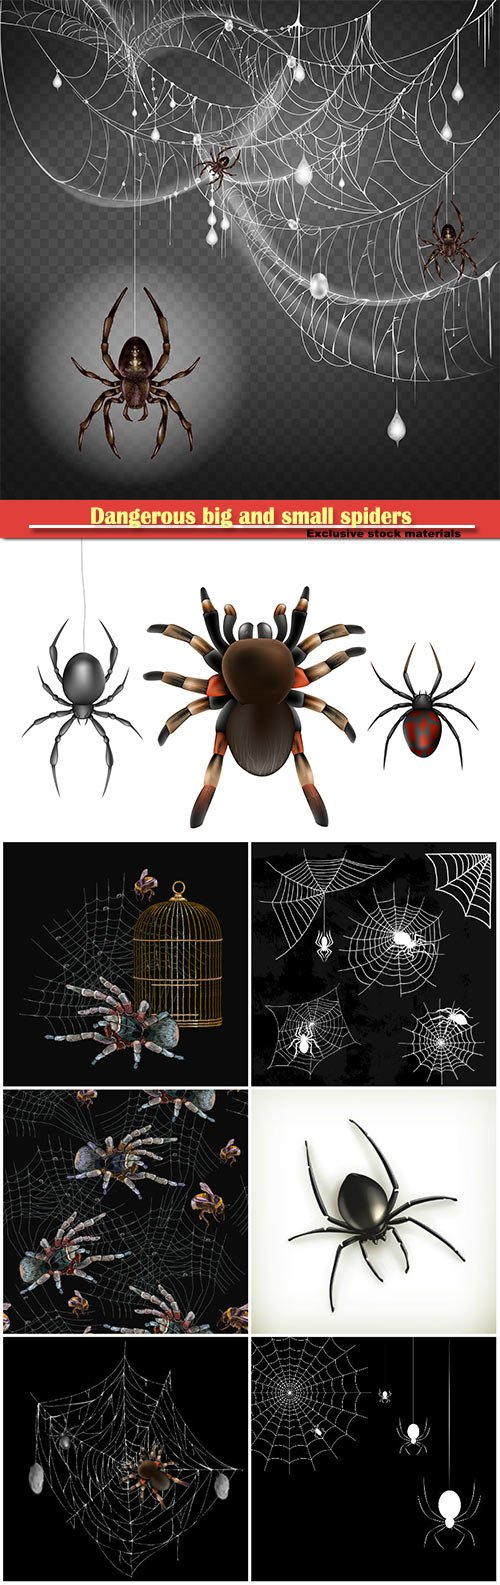 Dangerous, poisonous big and small spiders hanging on thin web string in 3d realistic vector illustration